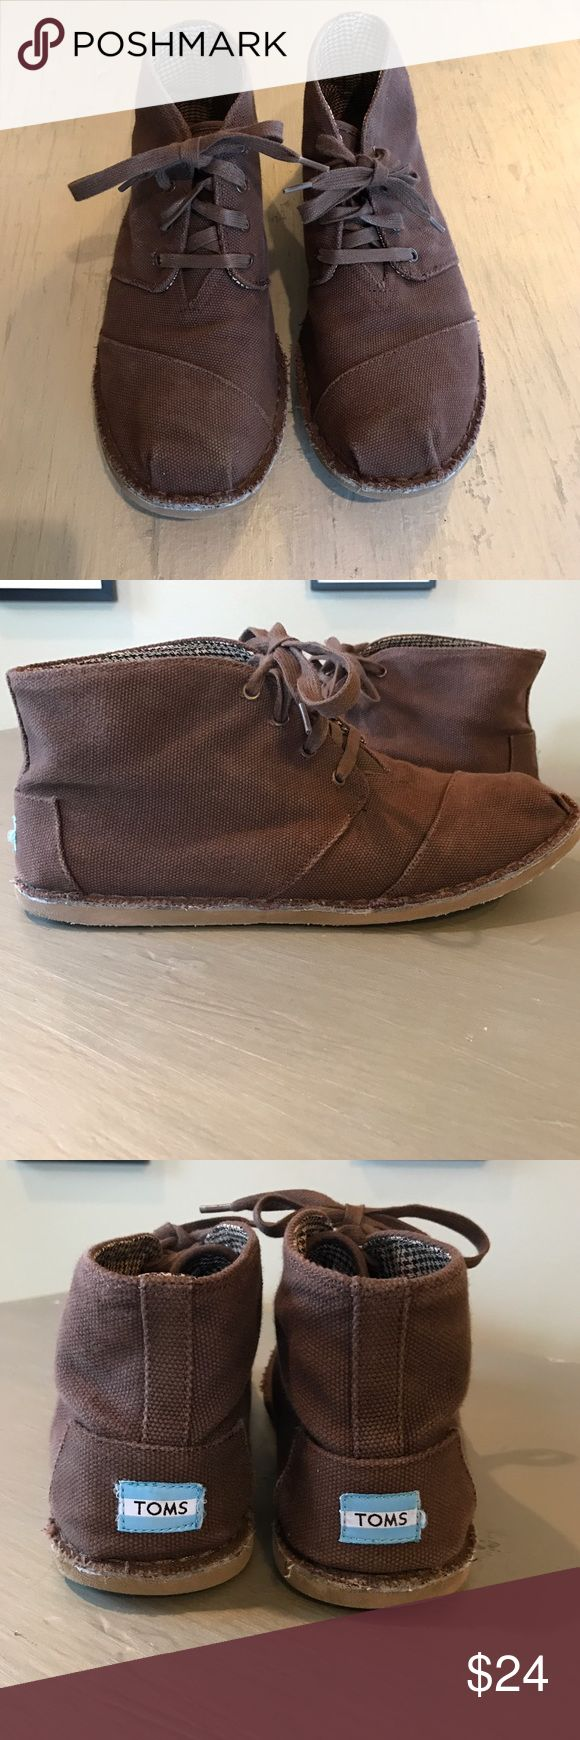 Men's TOMS Lace-up Brown Short Boots My husband has worn these a handful of times but these are still in good condition. Dark brown canvas/burlap material. 4 eye lace up style short boots. Raw edges around sole. Labeled as a men's 12. TOMS Shoes Boots